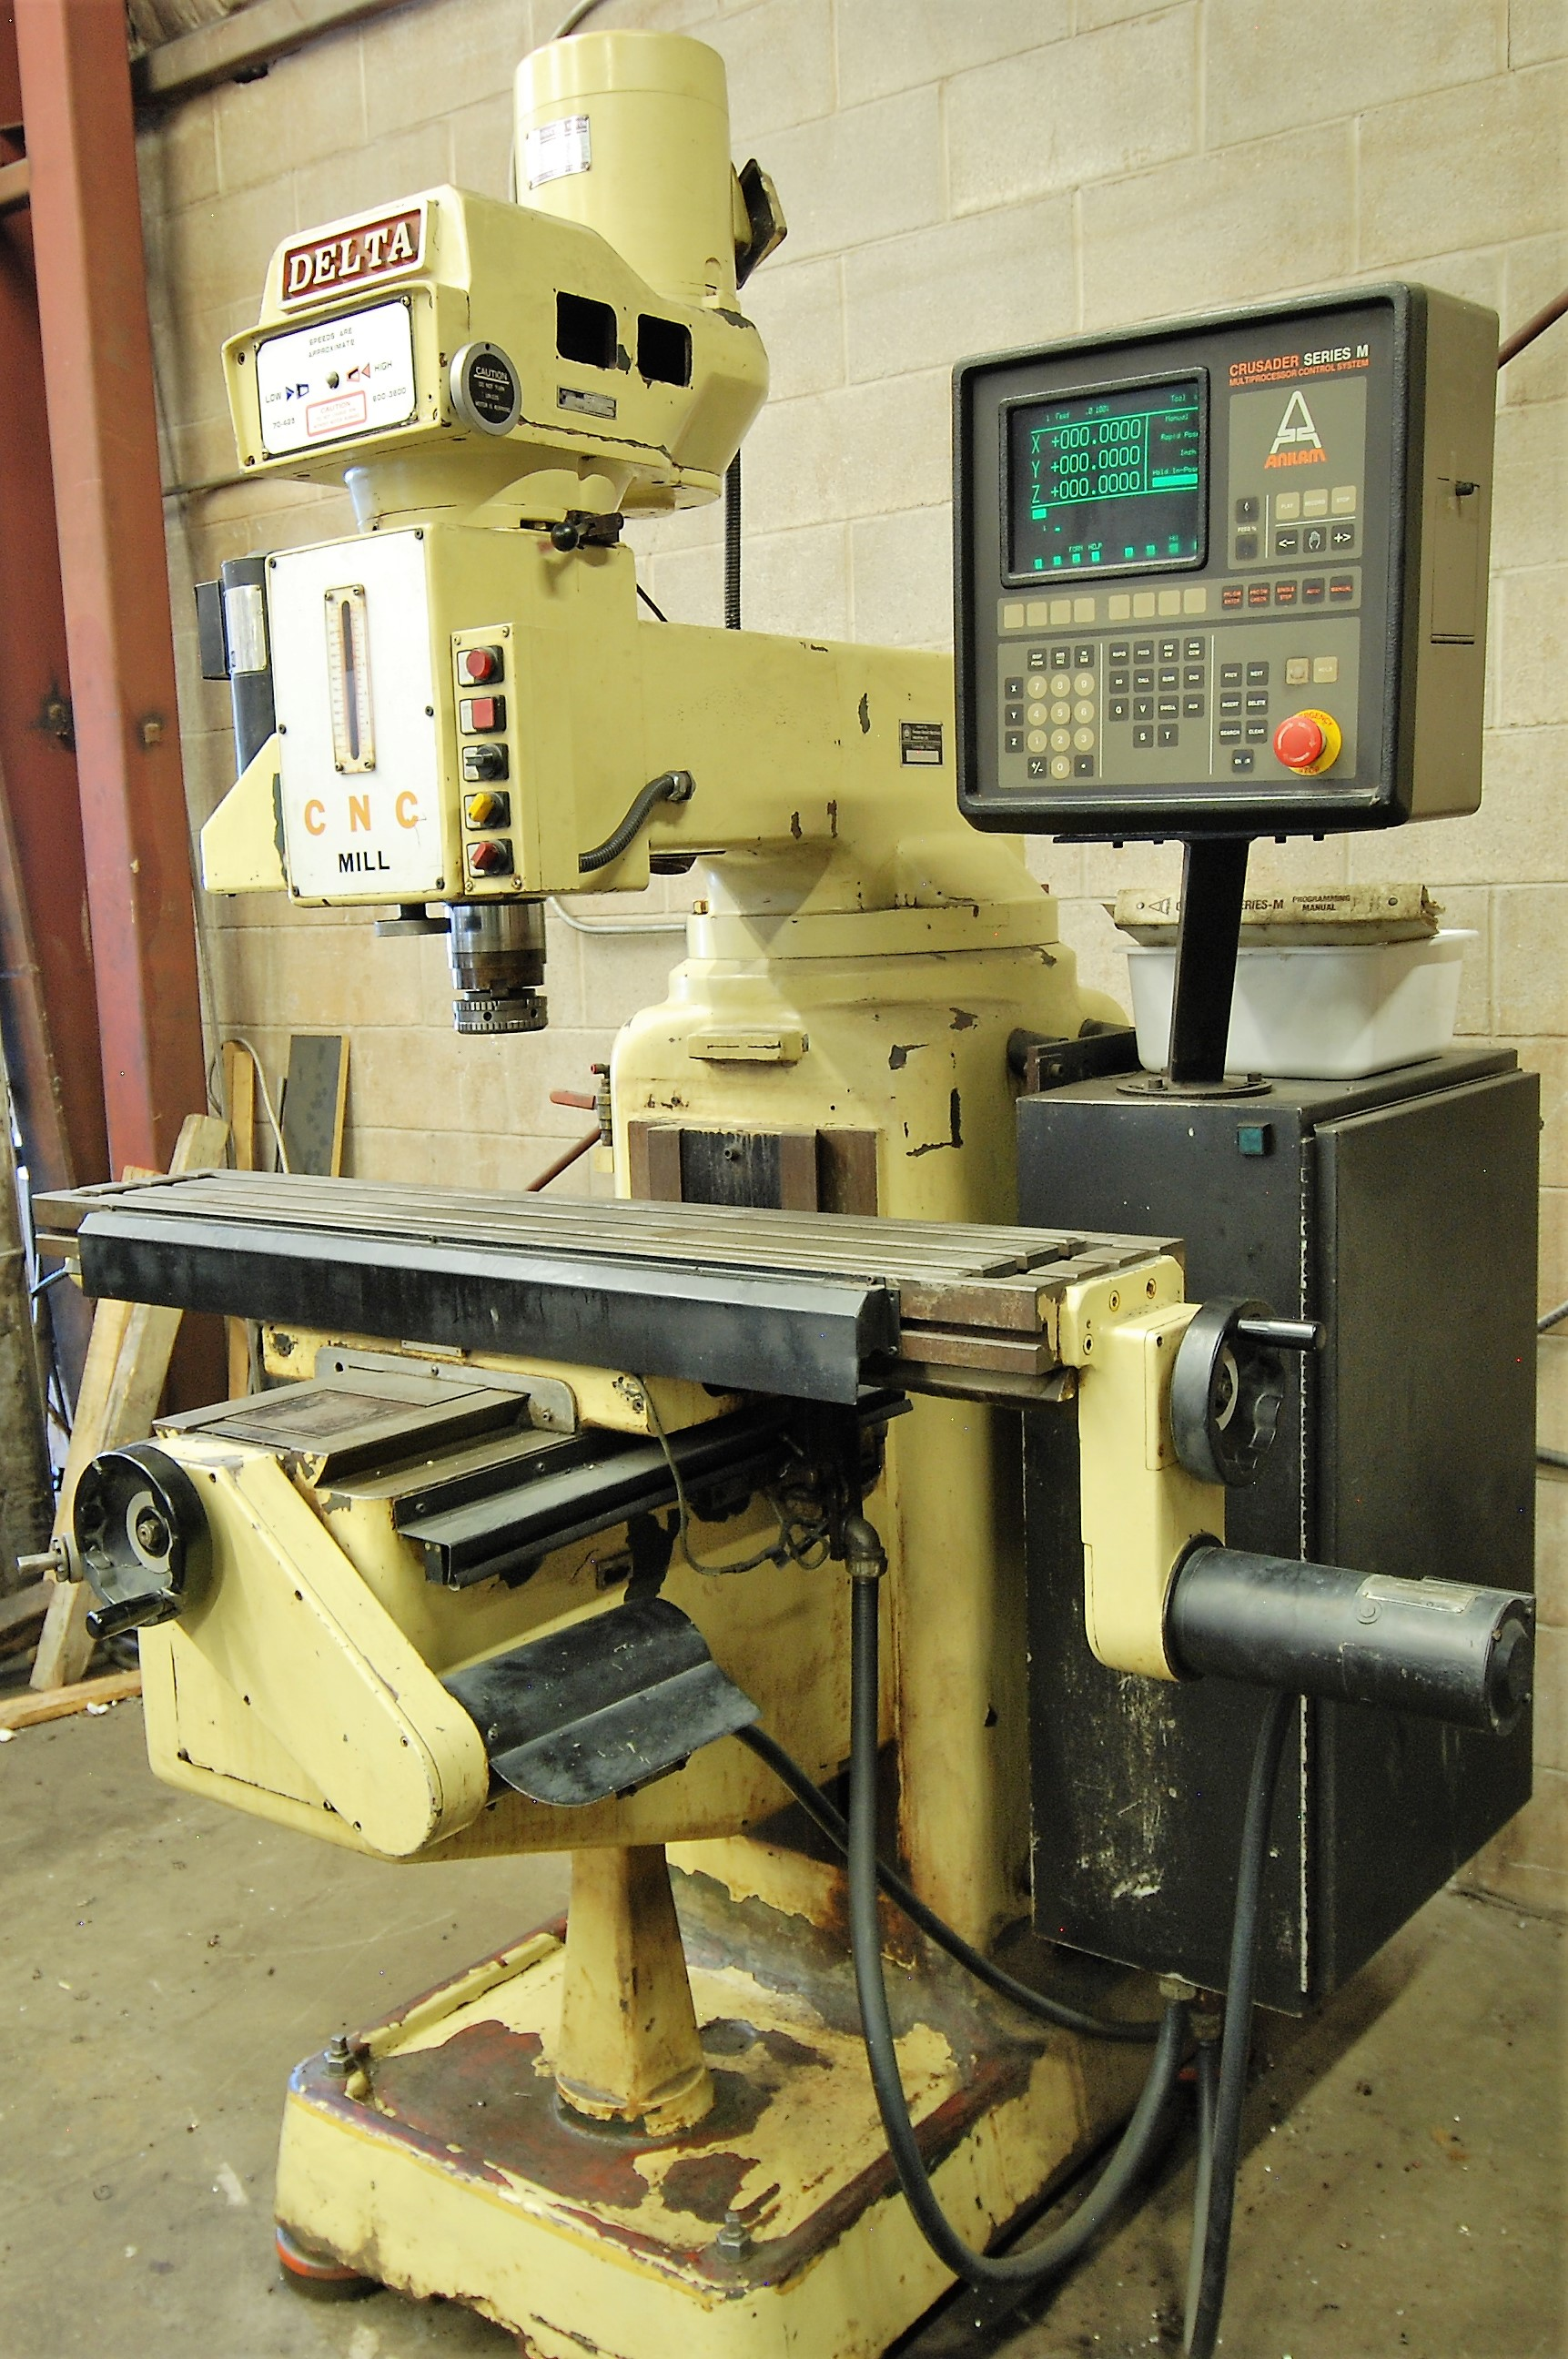 """DELTACNC VERTICAL MILLING MACHINE, ANILAM CRUSADER SERIES M CNC CONTROL, 10"""" x 52"""" TABLE, 3,600 - Image 2 of 7"""